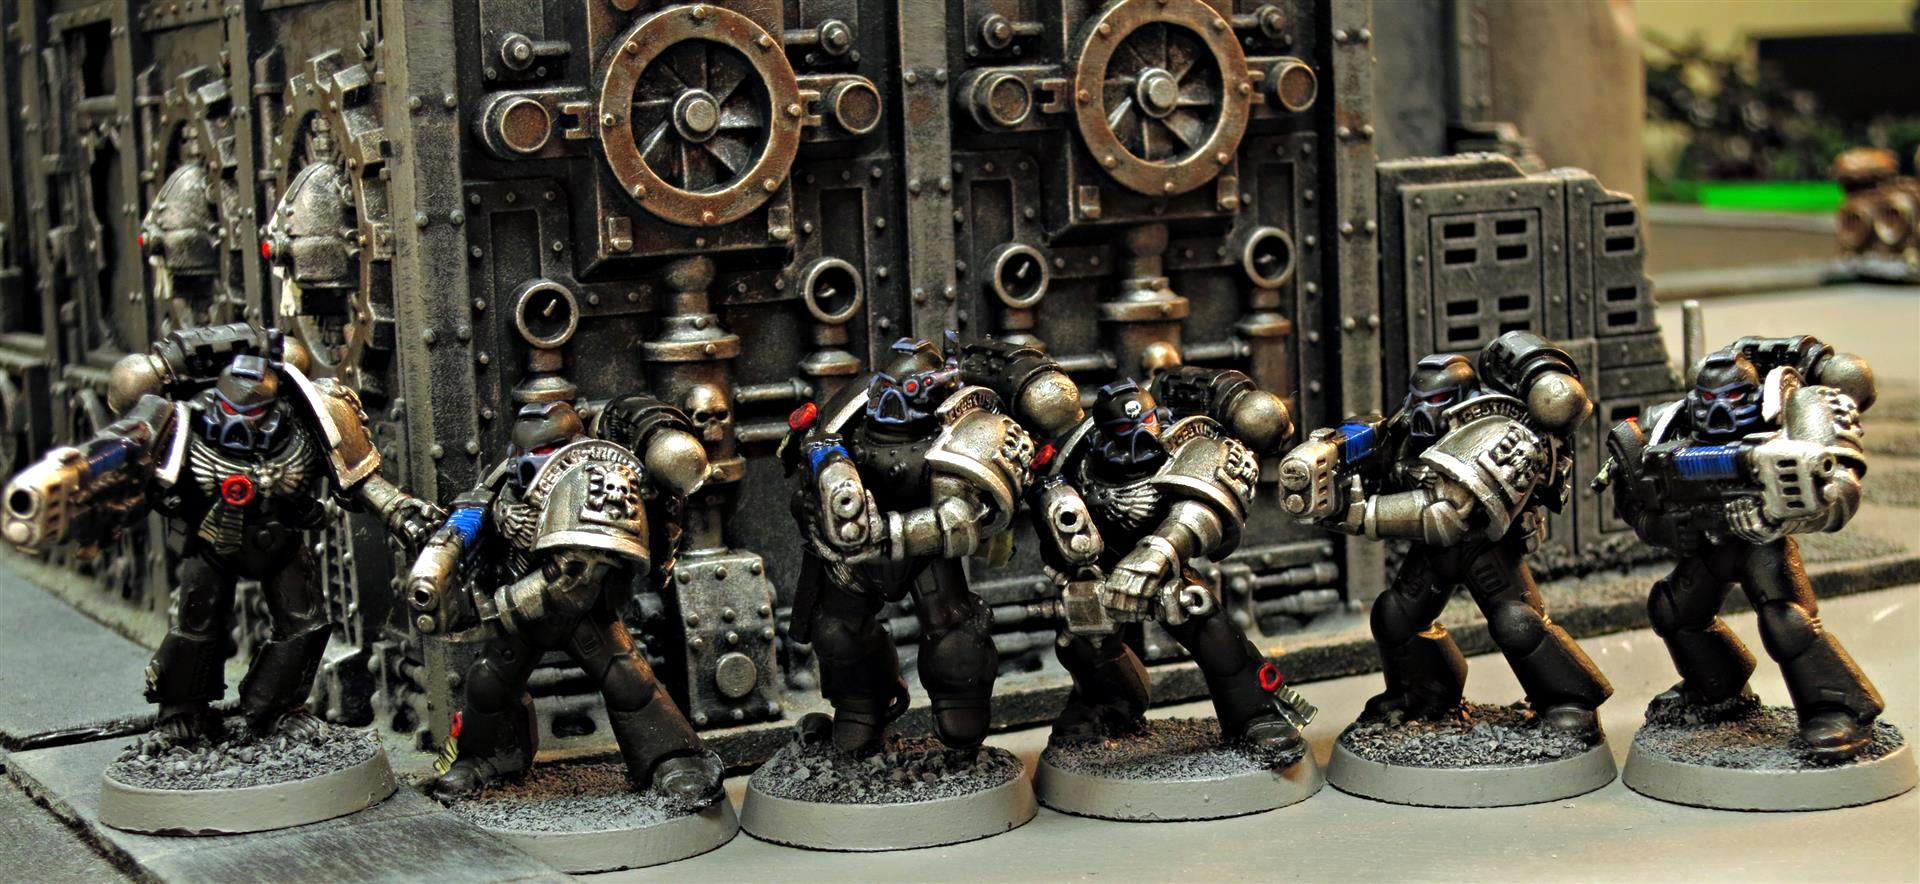 Black Shield, Black Shields, Deathwatch, Deathwatch Blackshields, Deathwatch Kill Team, Inquisition, Ordos Xenos, Plasma, Plasmaguns, Space Marines